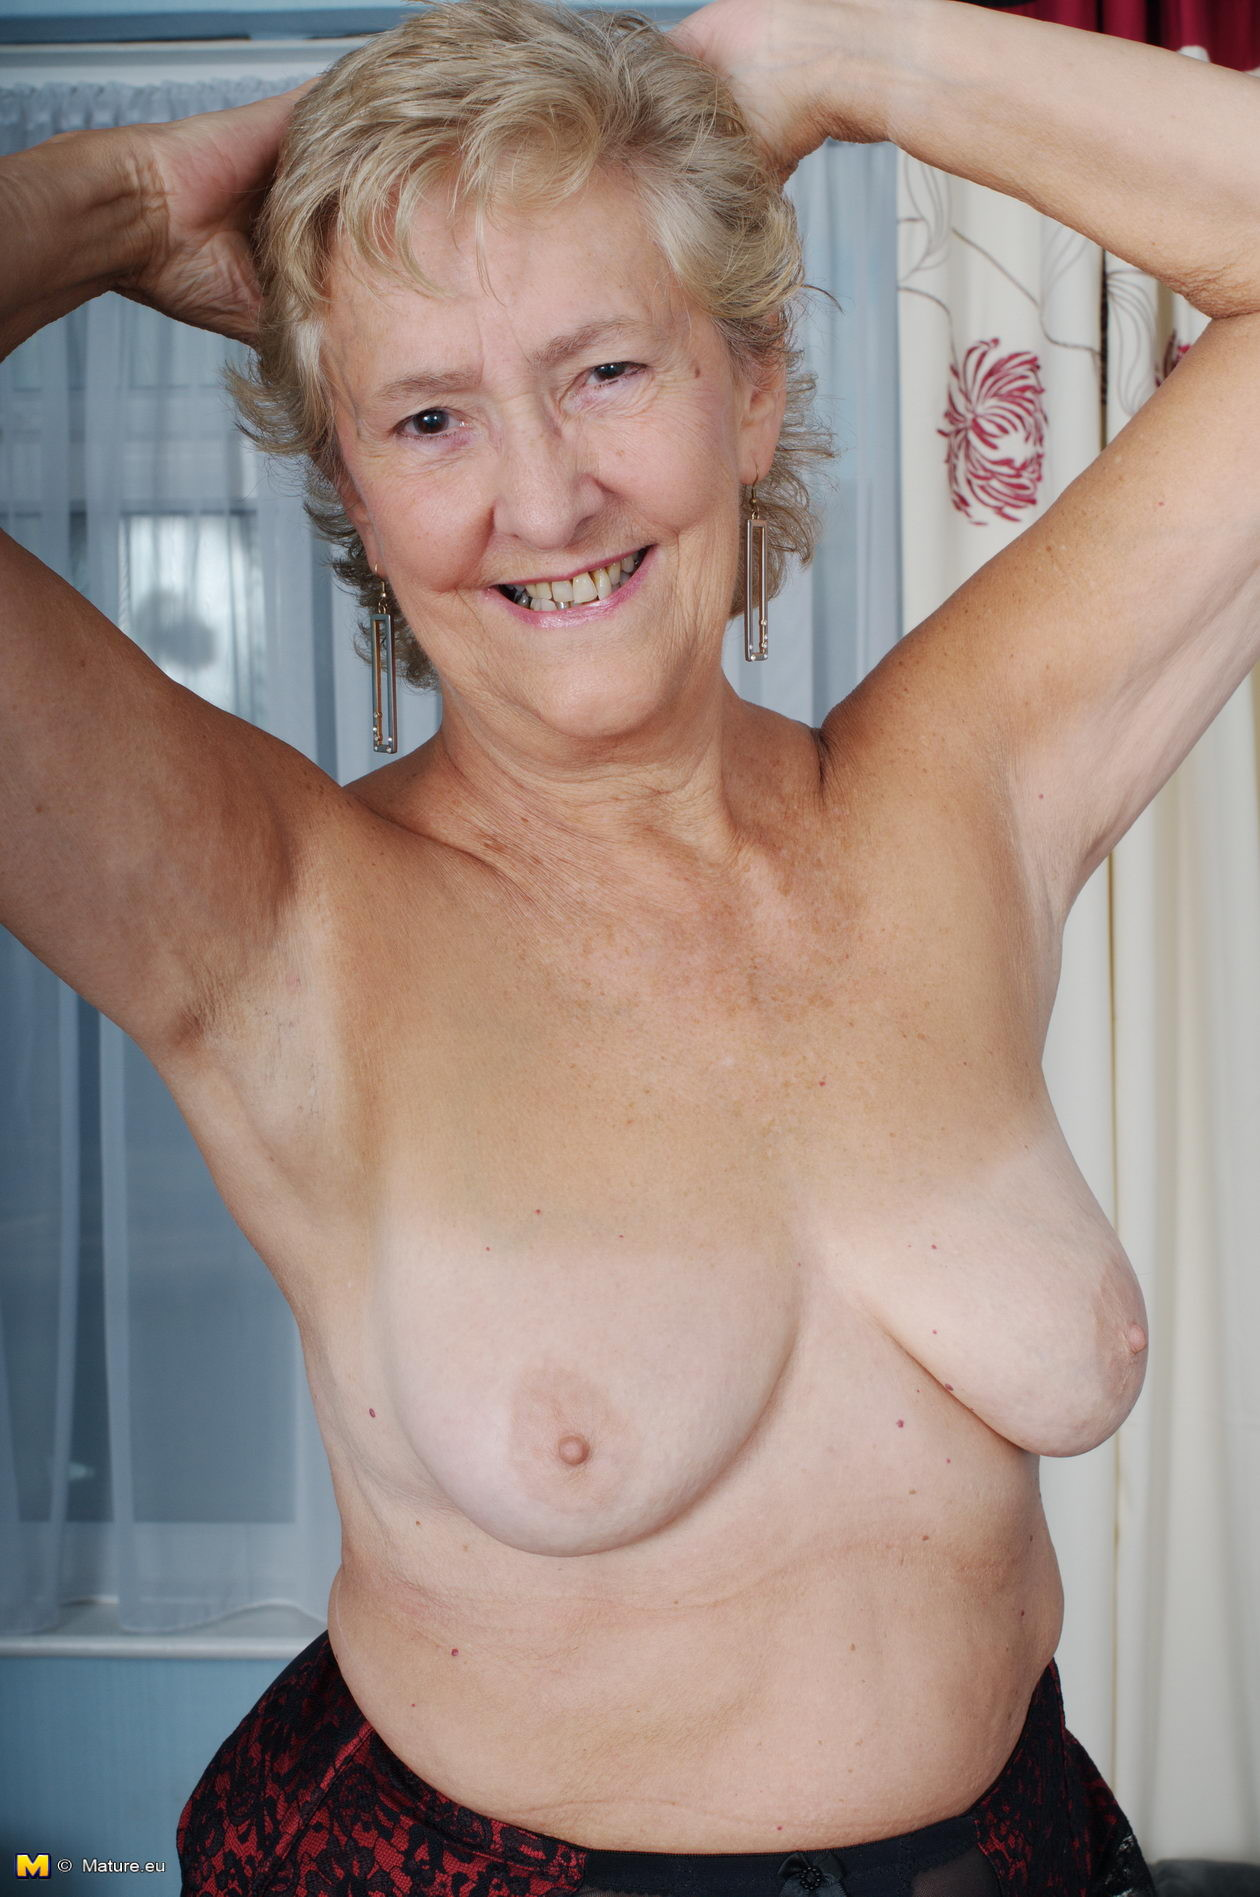 uk grannies nude jpg 1080x810